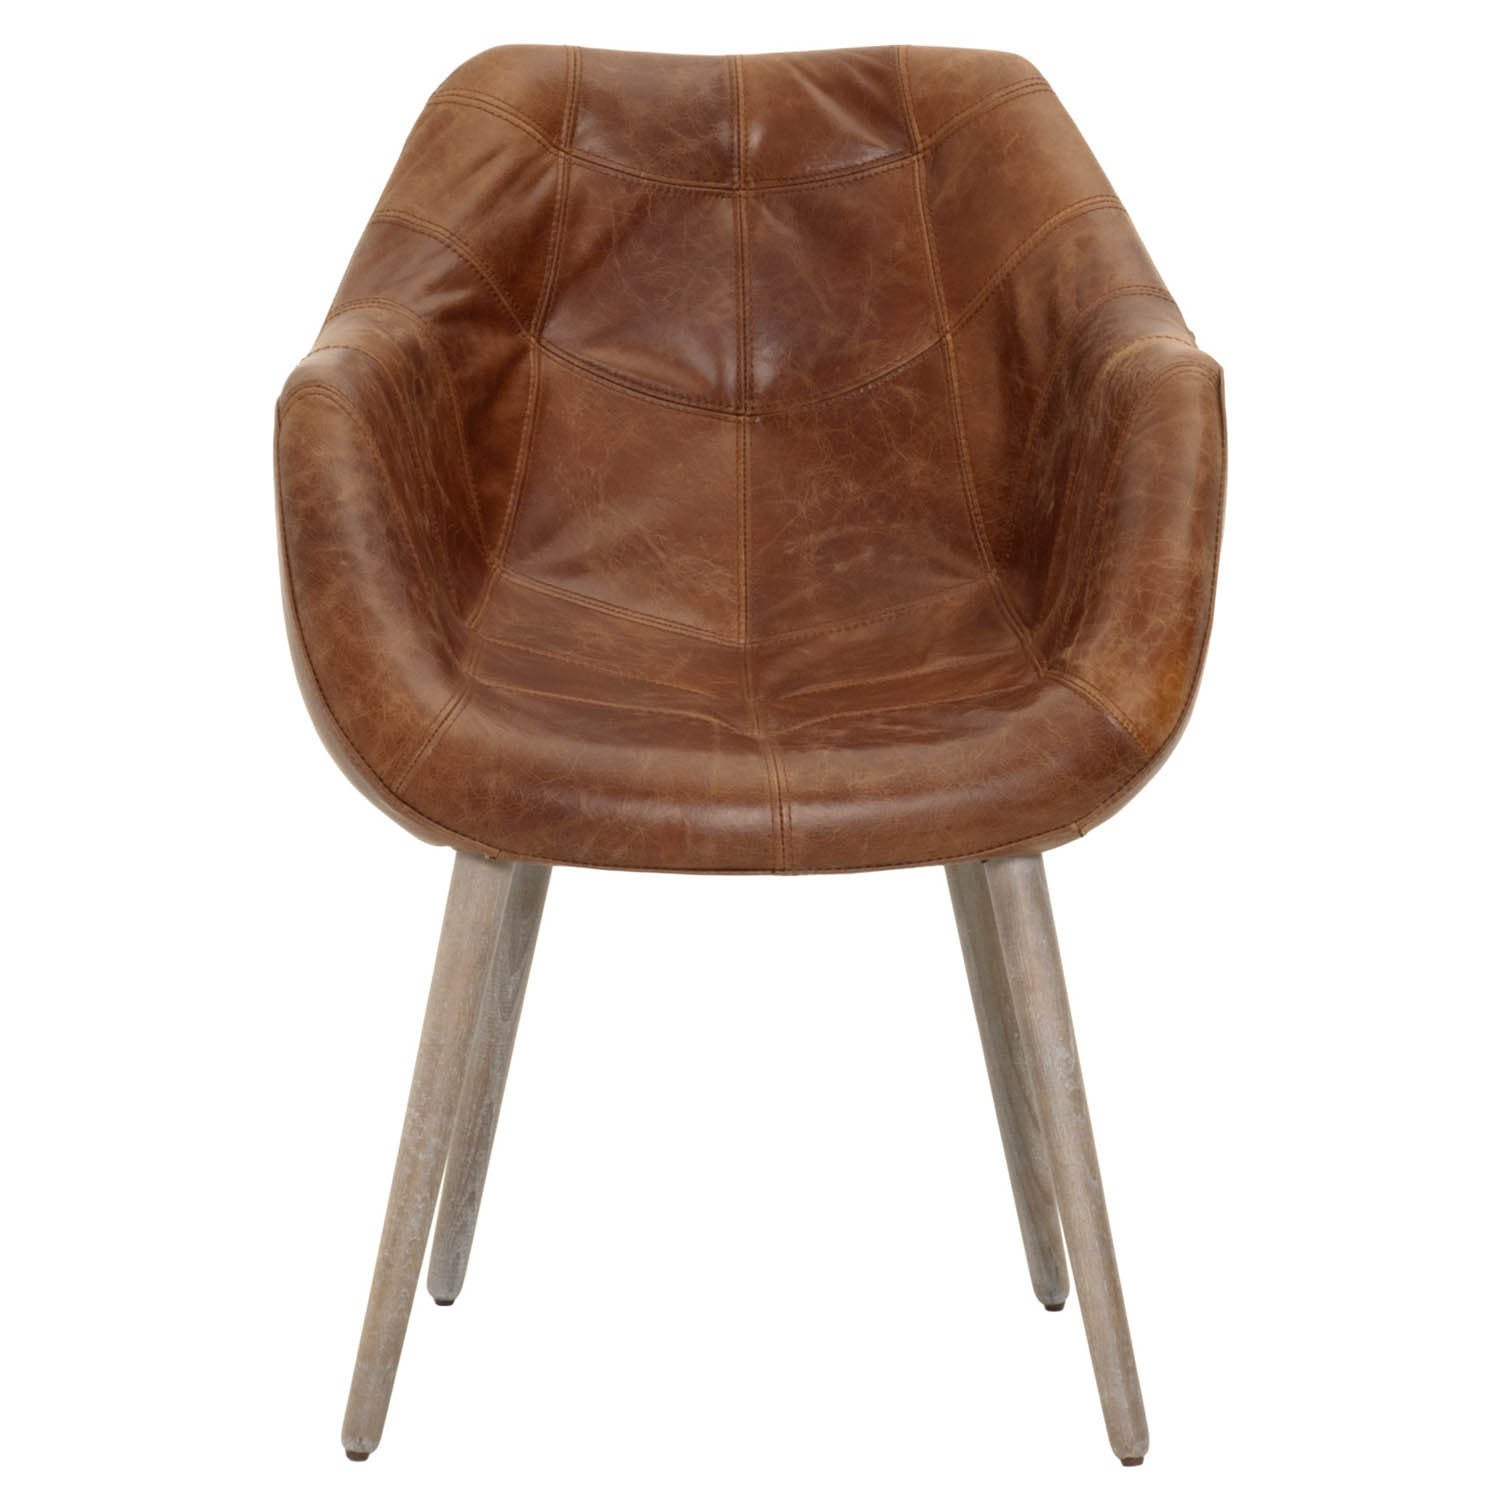 Gray Manor Dawn DistresseD Tan Wood/Leather Dining Chair ...